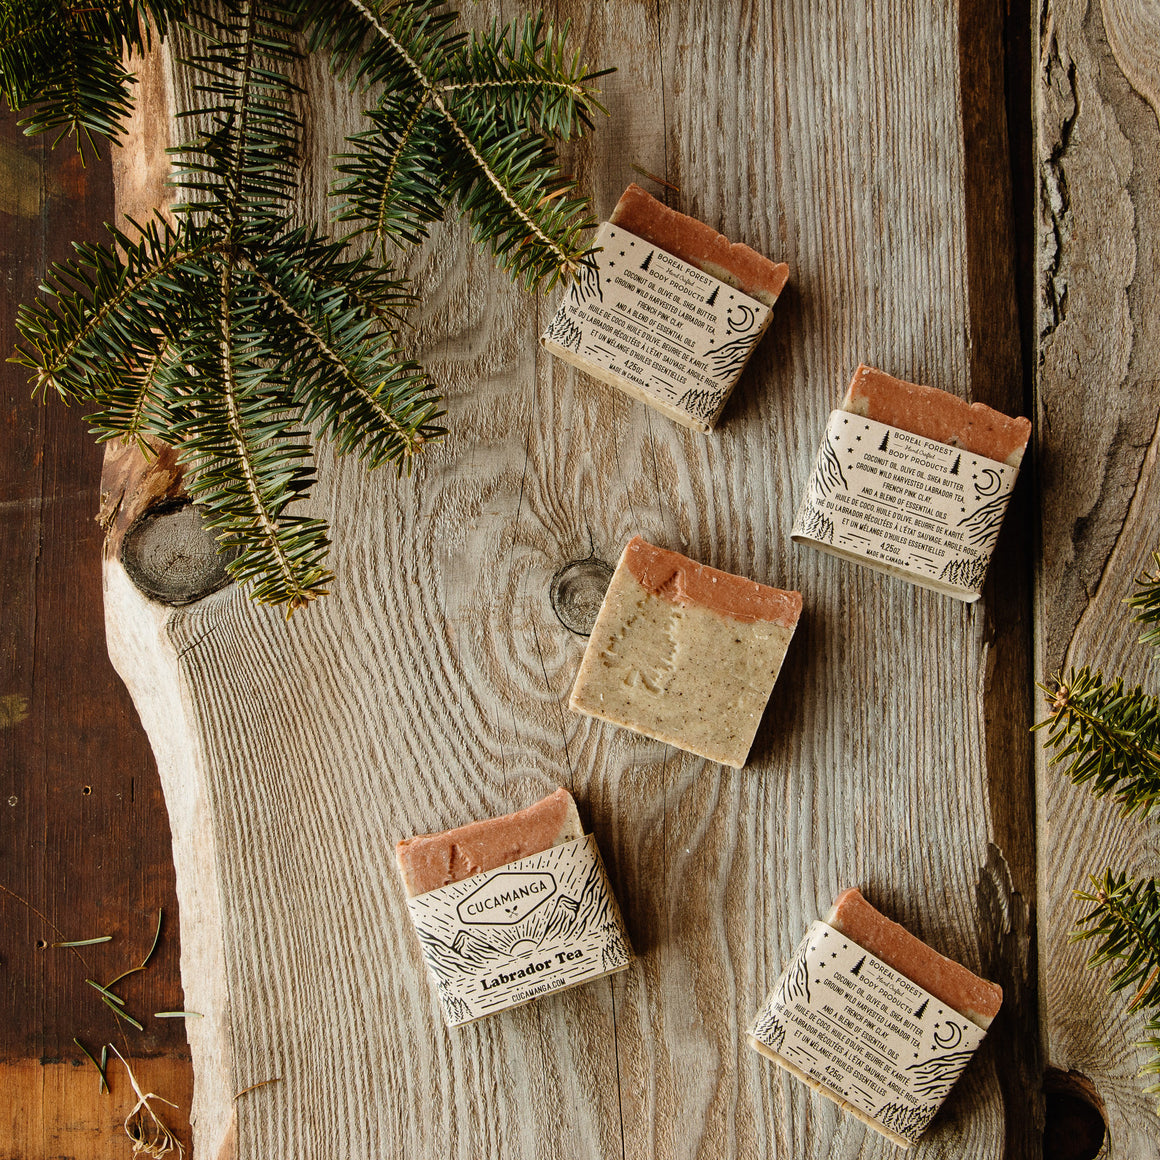 Labrador Tea: Boreal Forest Hand Crafted Soap